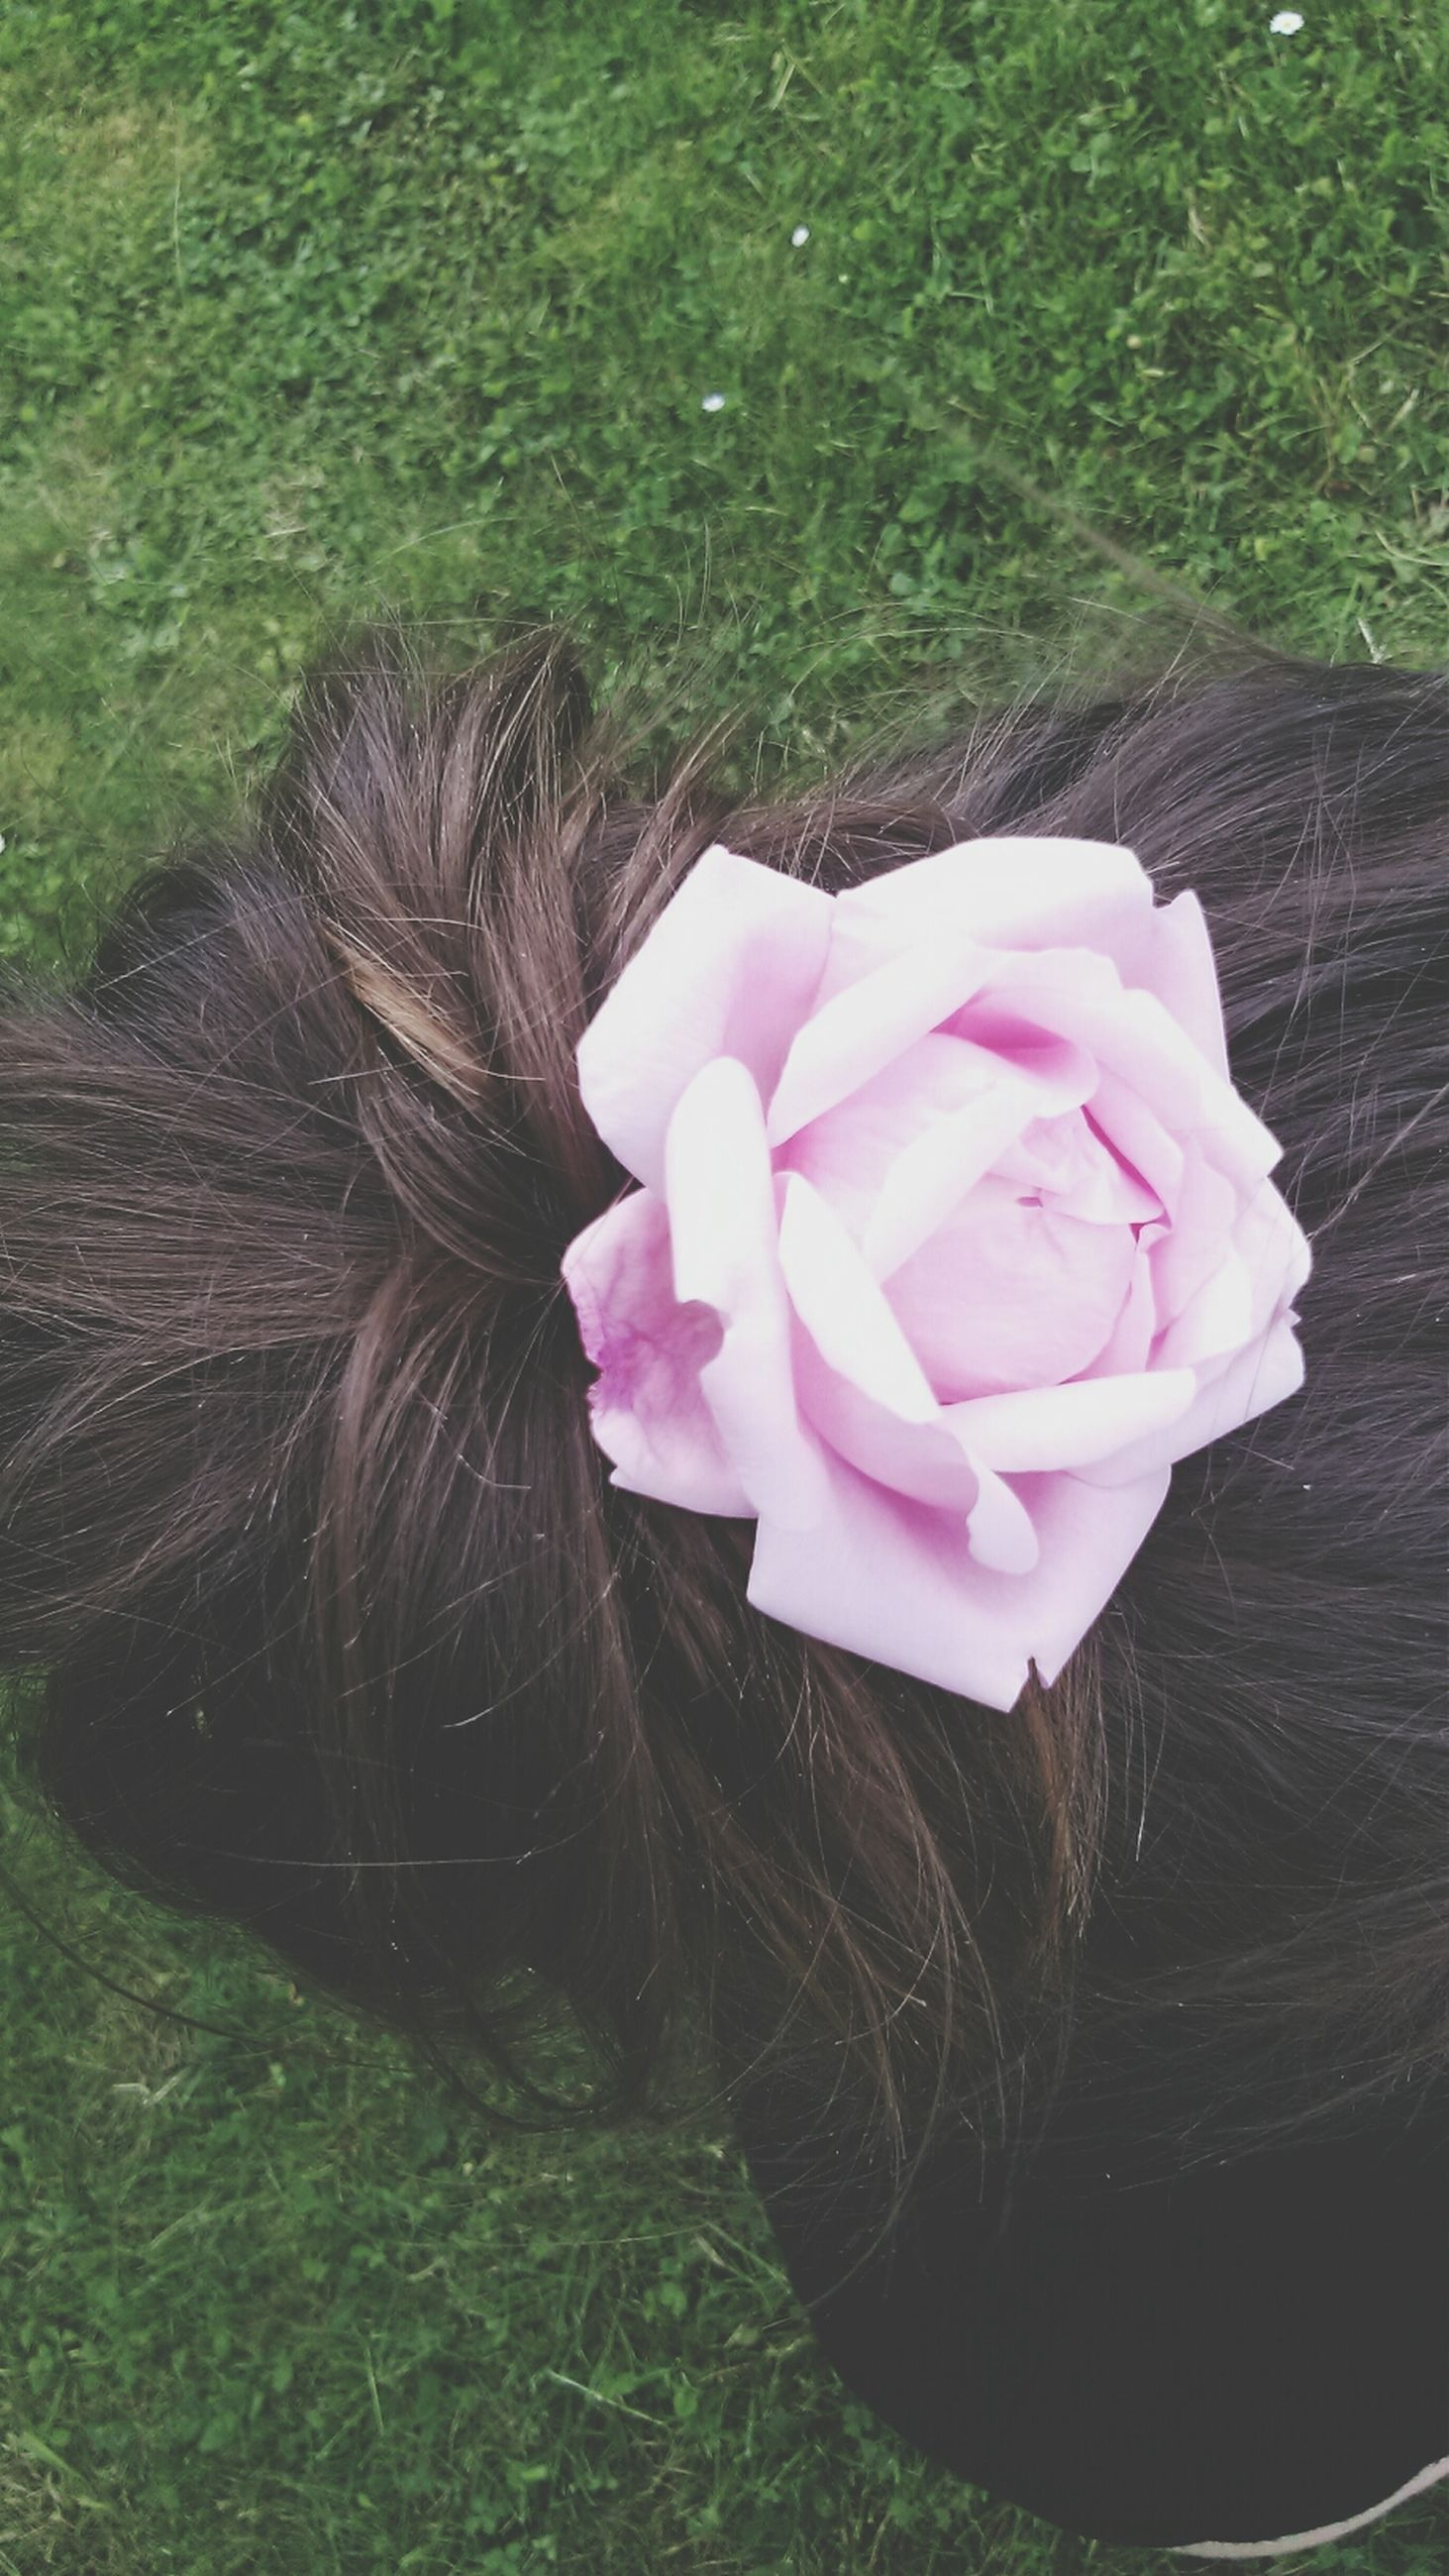 flower, pink color, petal, freshness, flower head, fragility, growth, beauty in nature, high angle view, single flower, close-up, nature, grass, blooming, plant, rose - flower, outdoors, field, park - man made space, day